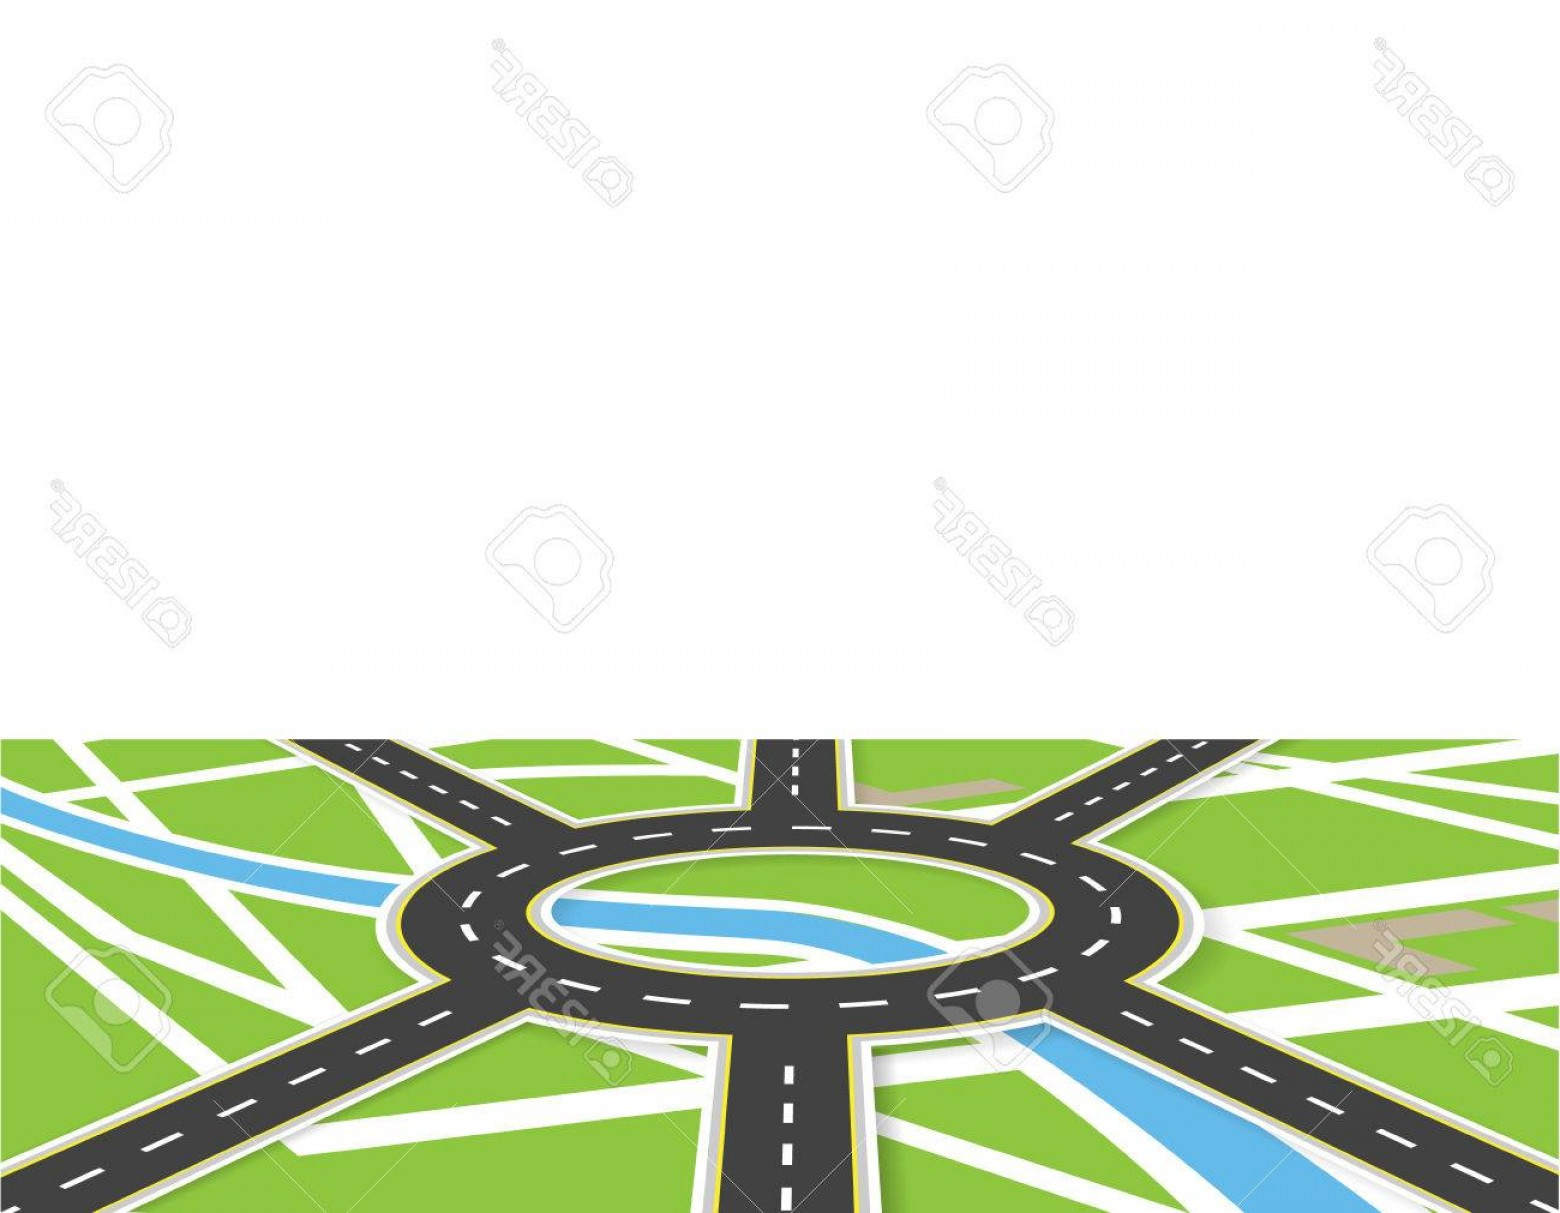 1560x1213 Photostock Vector Crossroads Of Roads With Markings Roundabout